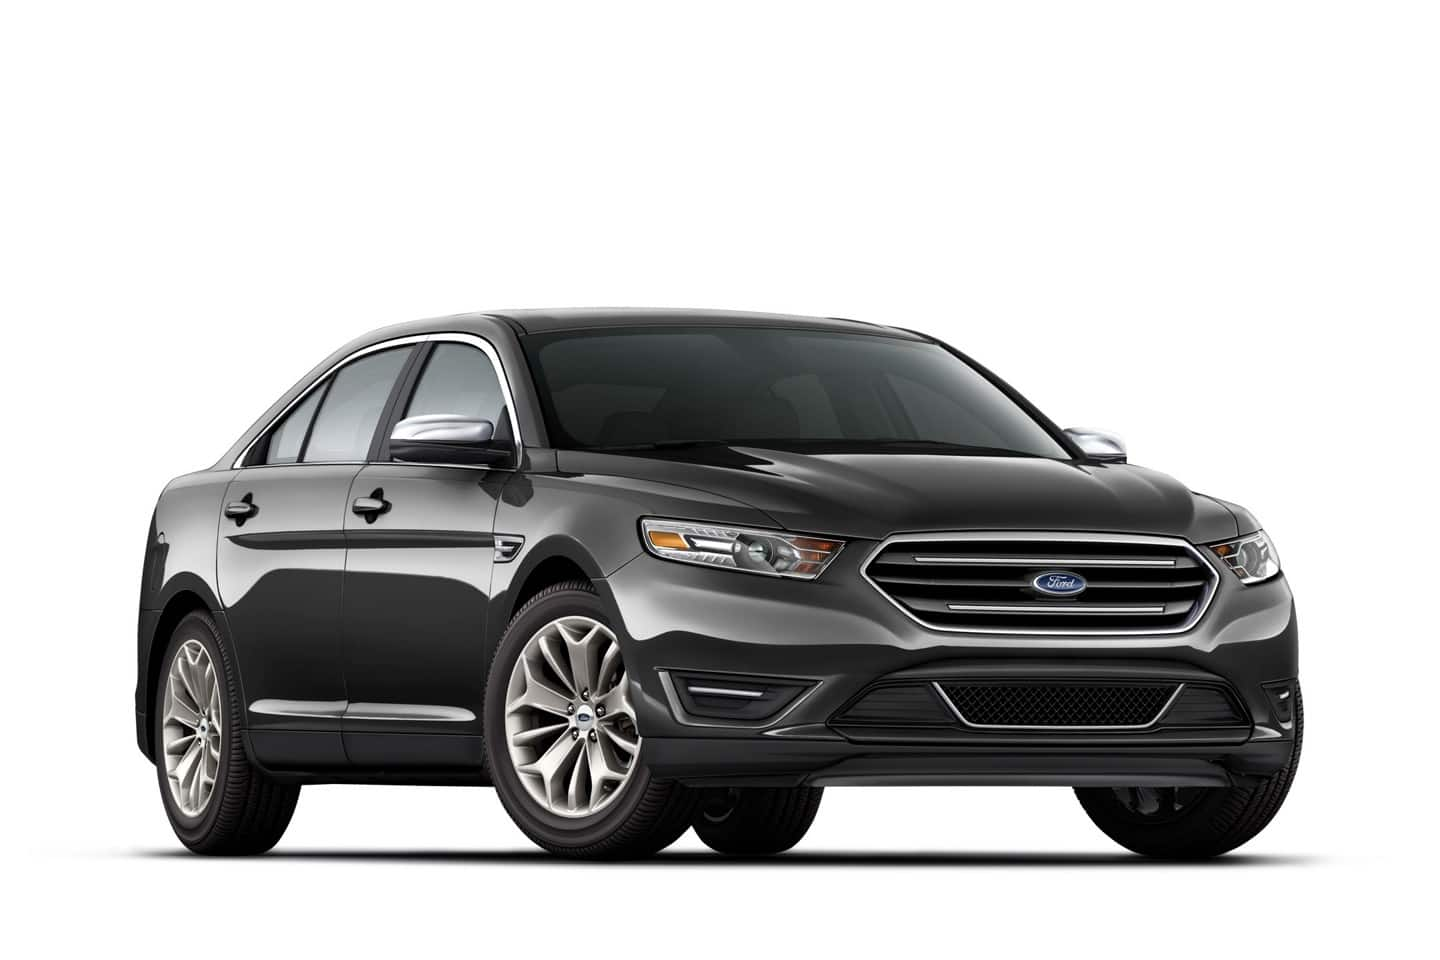 33 Best 2019 Ford Taurus Usa Exterior